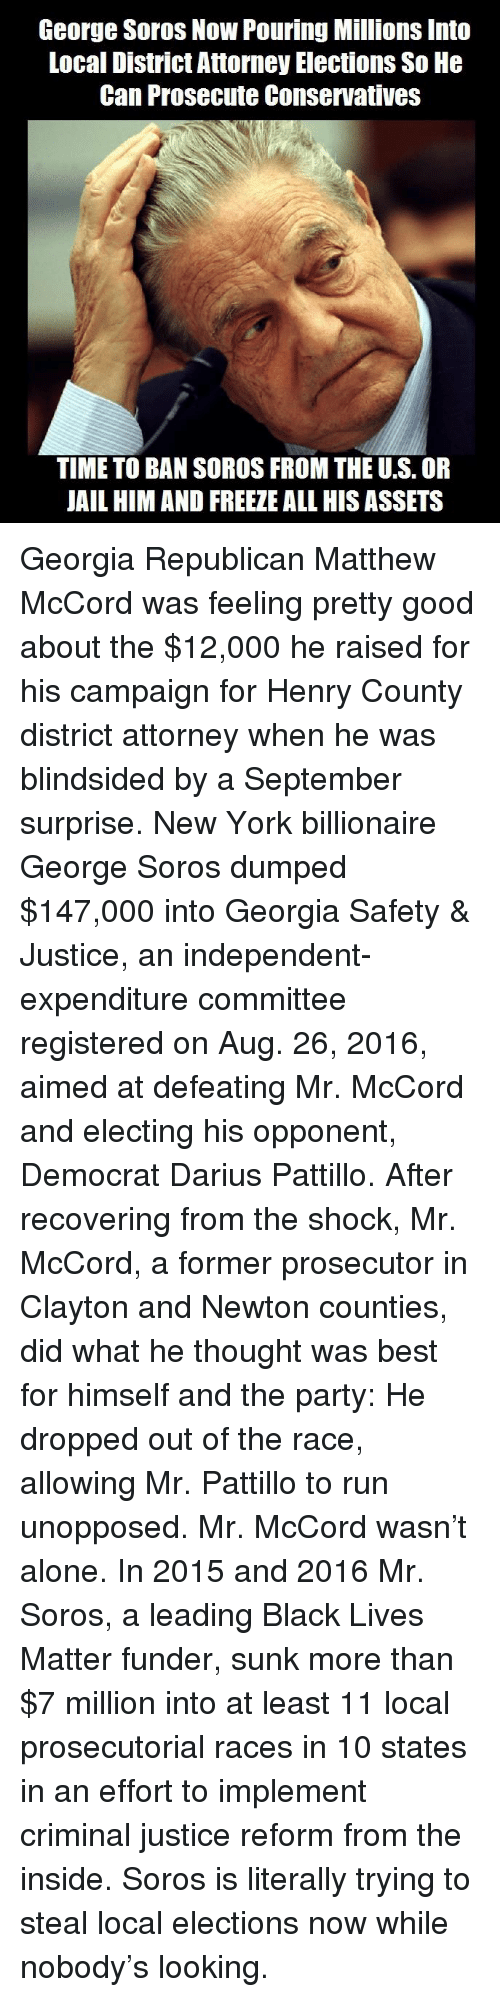 The Shocked: George Soros Now Pouring Millions Into  Local District Attorney Elections So He  Can Prosecute Conservatives  TIME TO BAN SOROS FROM THE U.S. OR  JAIL HIM AND FREEZE ALL HIS ASSETS Georgia Republican Matthew McCord was feeling pretty good about the $12,000 he raised for his campaign for Henry County district attorney when he was blindsided by a September surprise. New York billionaire George Soros dumped $147,000 into Georgia Safety & Justice, an independent-expenditure committee registered on Aug. 26, 2016, aimed at defeating Mr. McCord and electing his opponent, Democrat Darius Pattillo. After recovering from the shock, Mr. McCord, a former prosecutor in Clayton and Newton counties, did what he thought was best for himself and the party: He dropped out of the race, allowing Mr. Pattillo to run unopposed. Mr. McCord wasn't alone. In 2015 and 2016 Mr. Soros, a leading Black Lives Matter funder, sunk more than $7 million into at least 11 local prosecutorial races in 10 states in an effort to implement criminal justice reform from the inside.                                         Soros is literally trying to steal local elections now while nobody's looking.